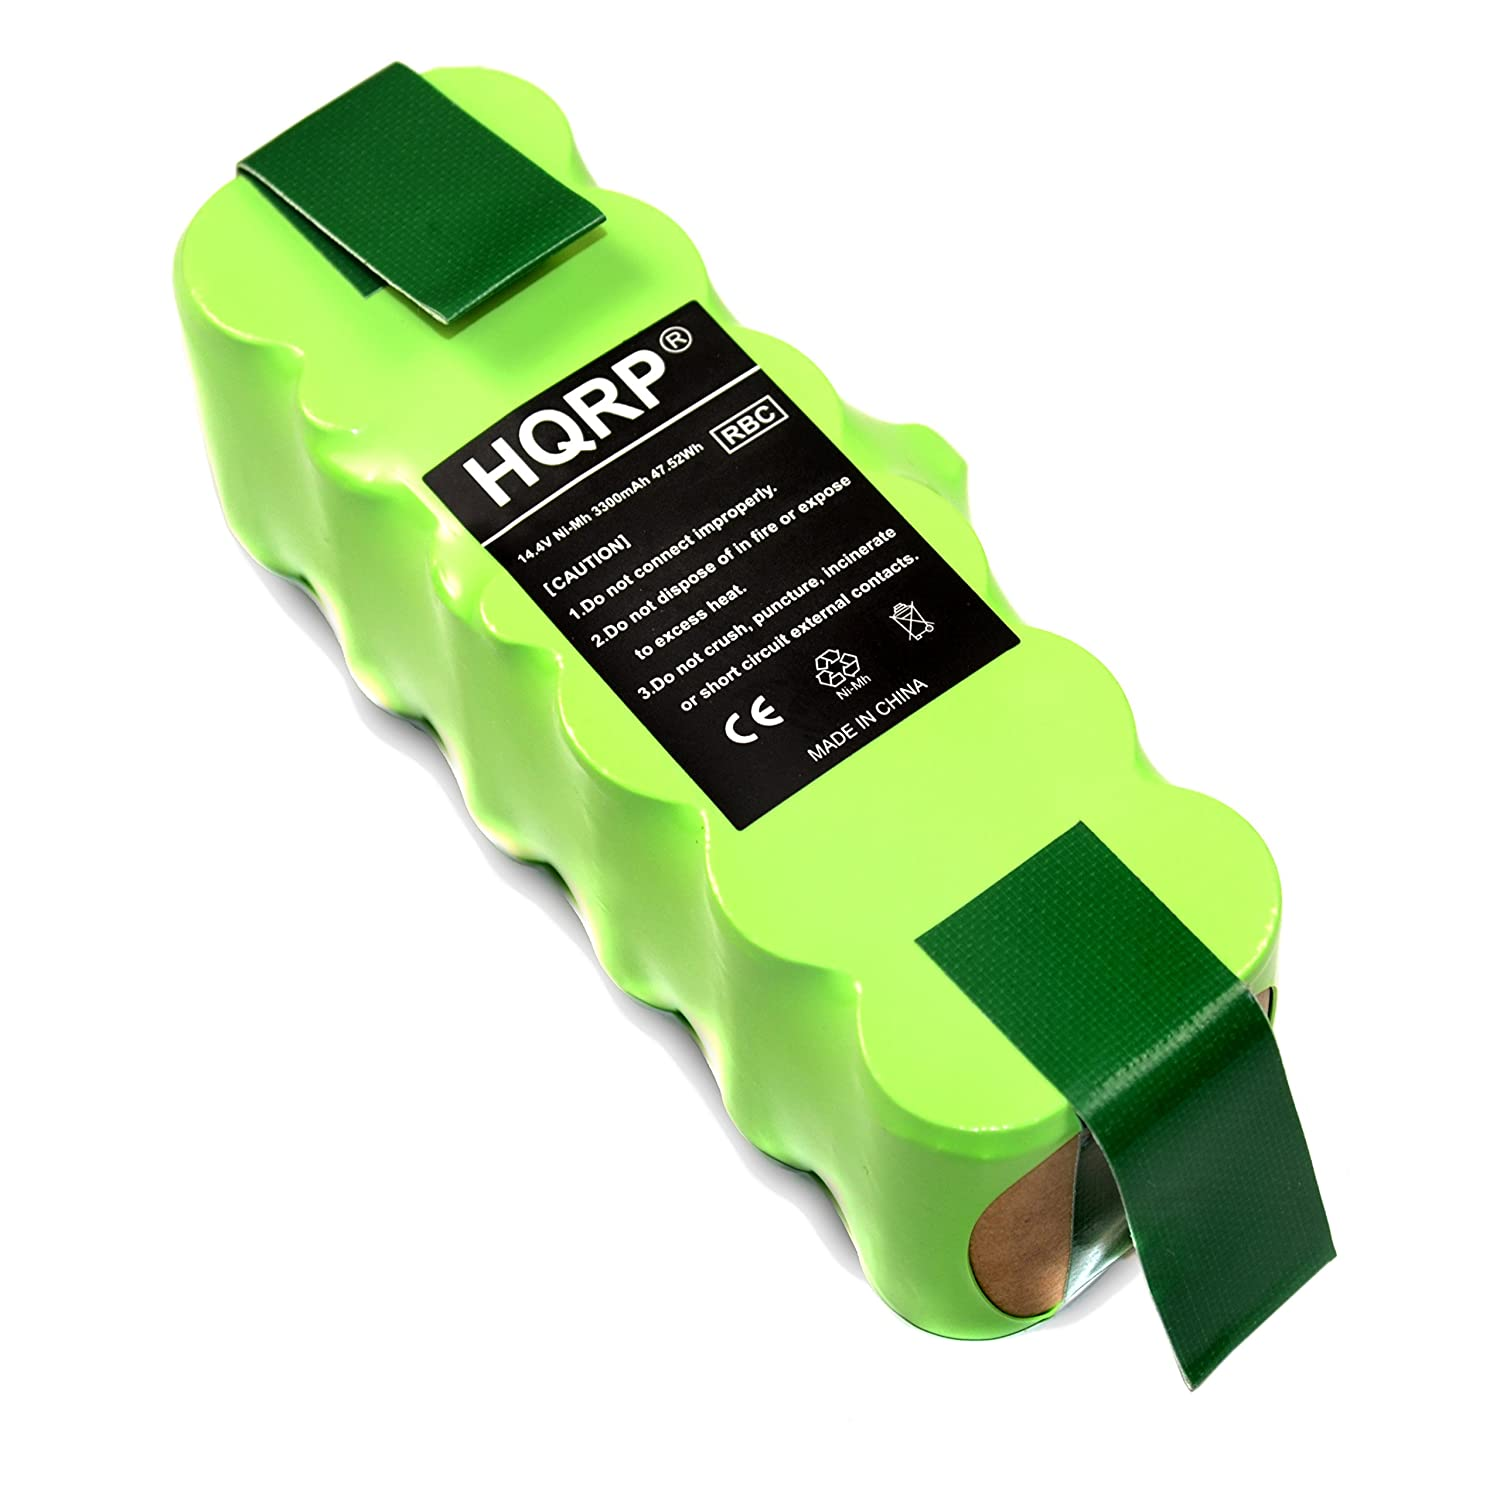 HQRP 3300mAh APS Battery for iROBOT Roomba 531/533 / 536/537 / 551/561 / 563/564 / 571/577 / 578/600 / 611/790; 800/880 Series [Vacuum Cleaning Robot] Replacement plus Coaster 887774109031380